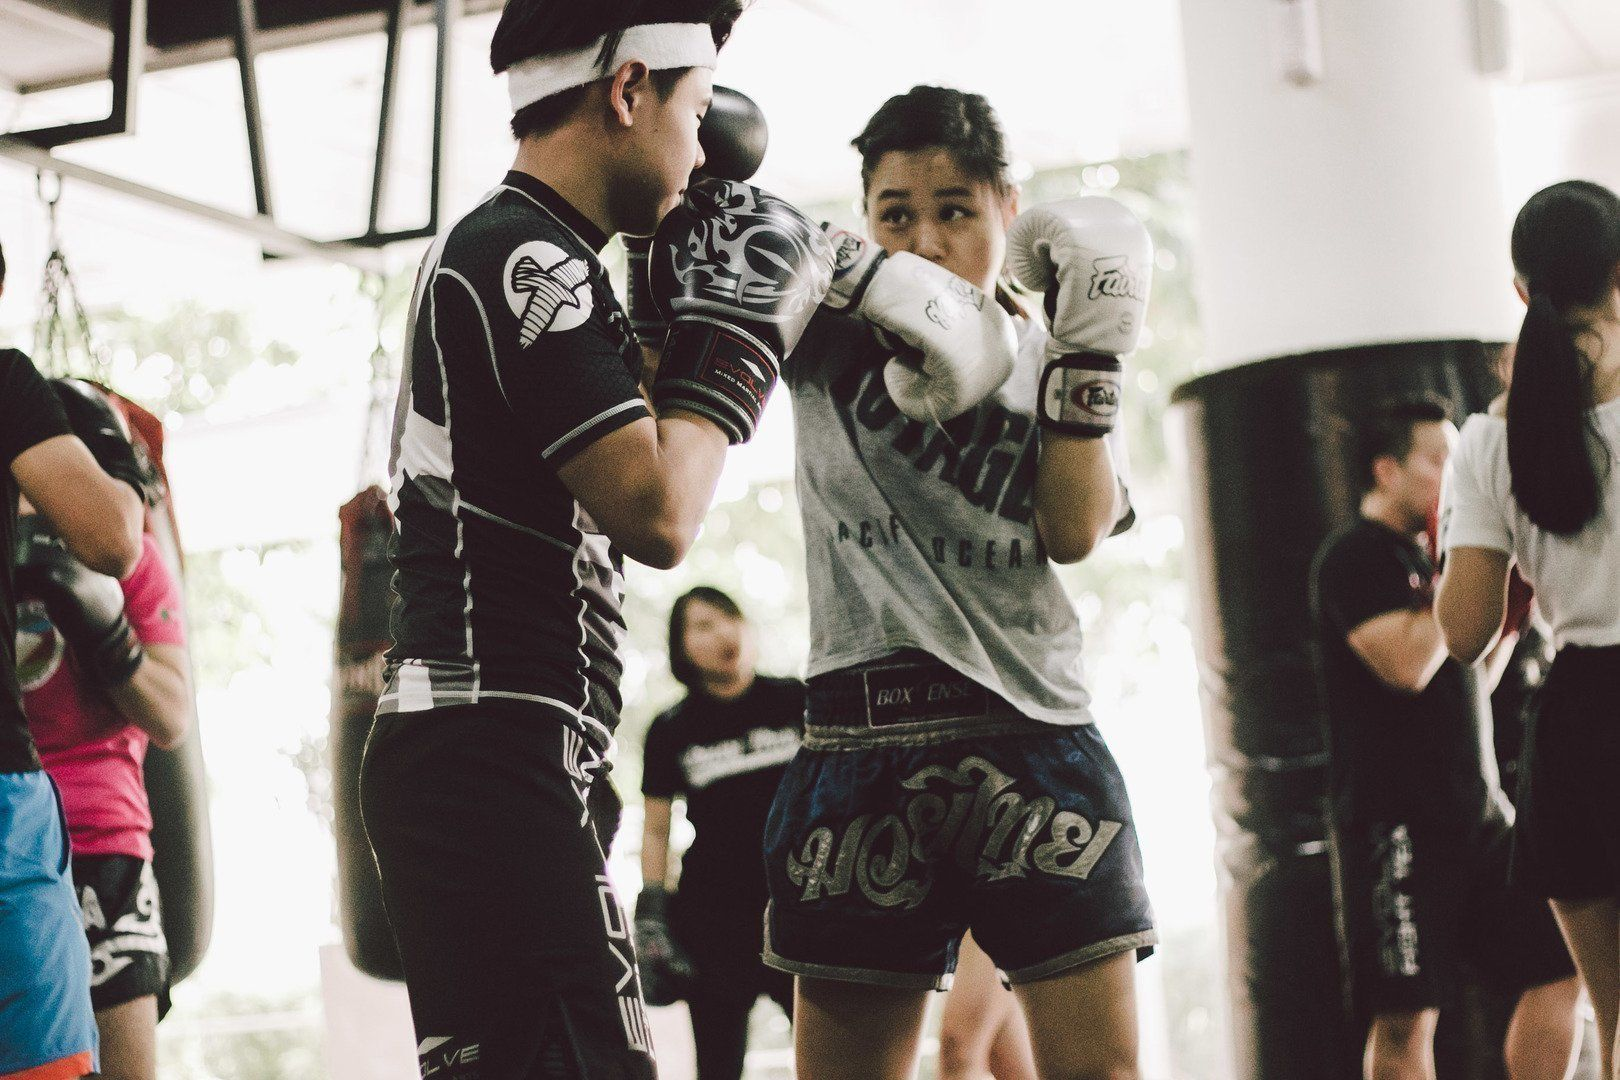 The elbow strike is usually thrown in close range.